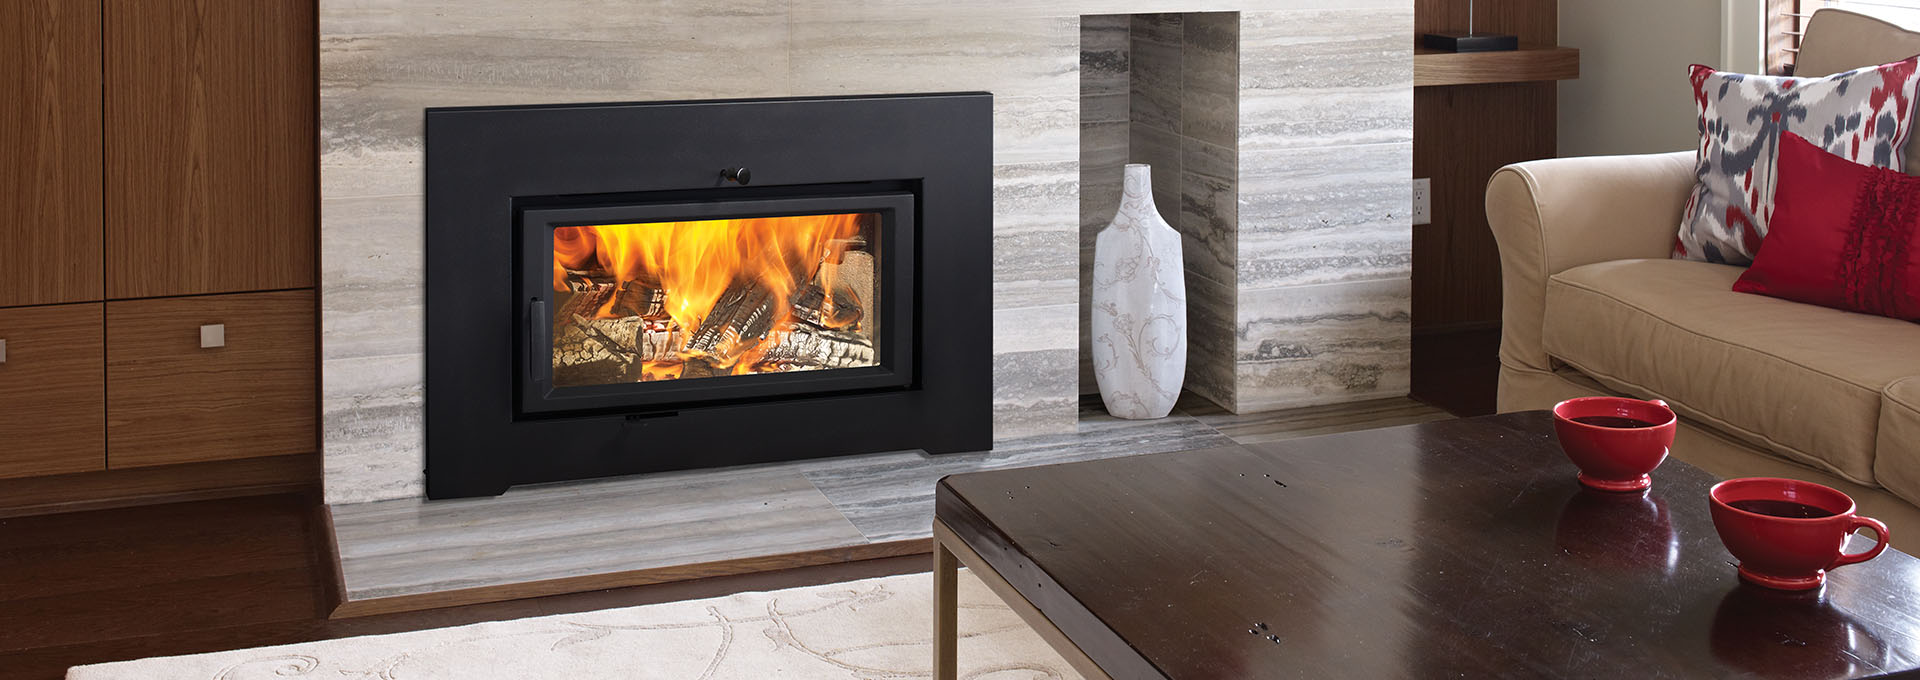 Regency Fireplace Insert Prices Unique Wood Inserts Epa Certified